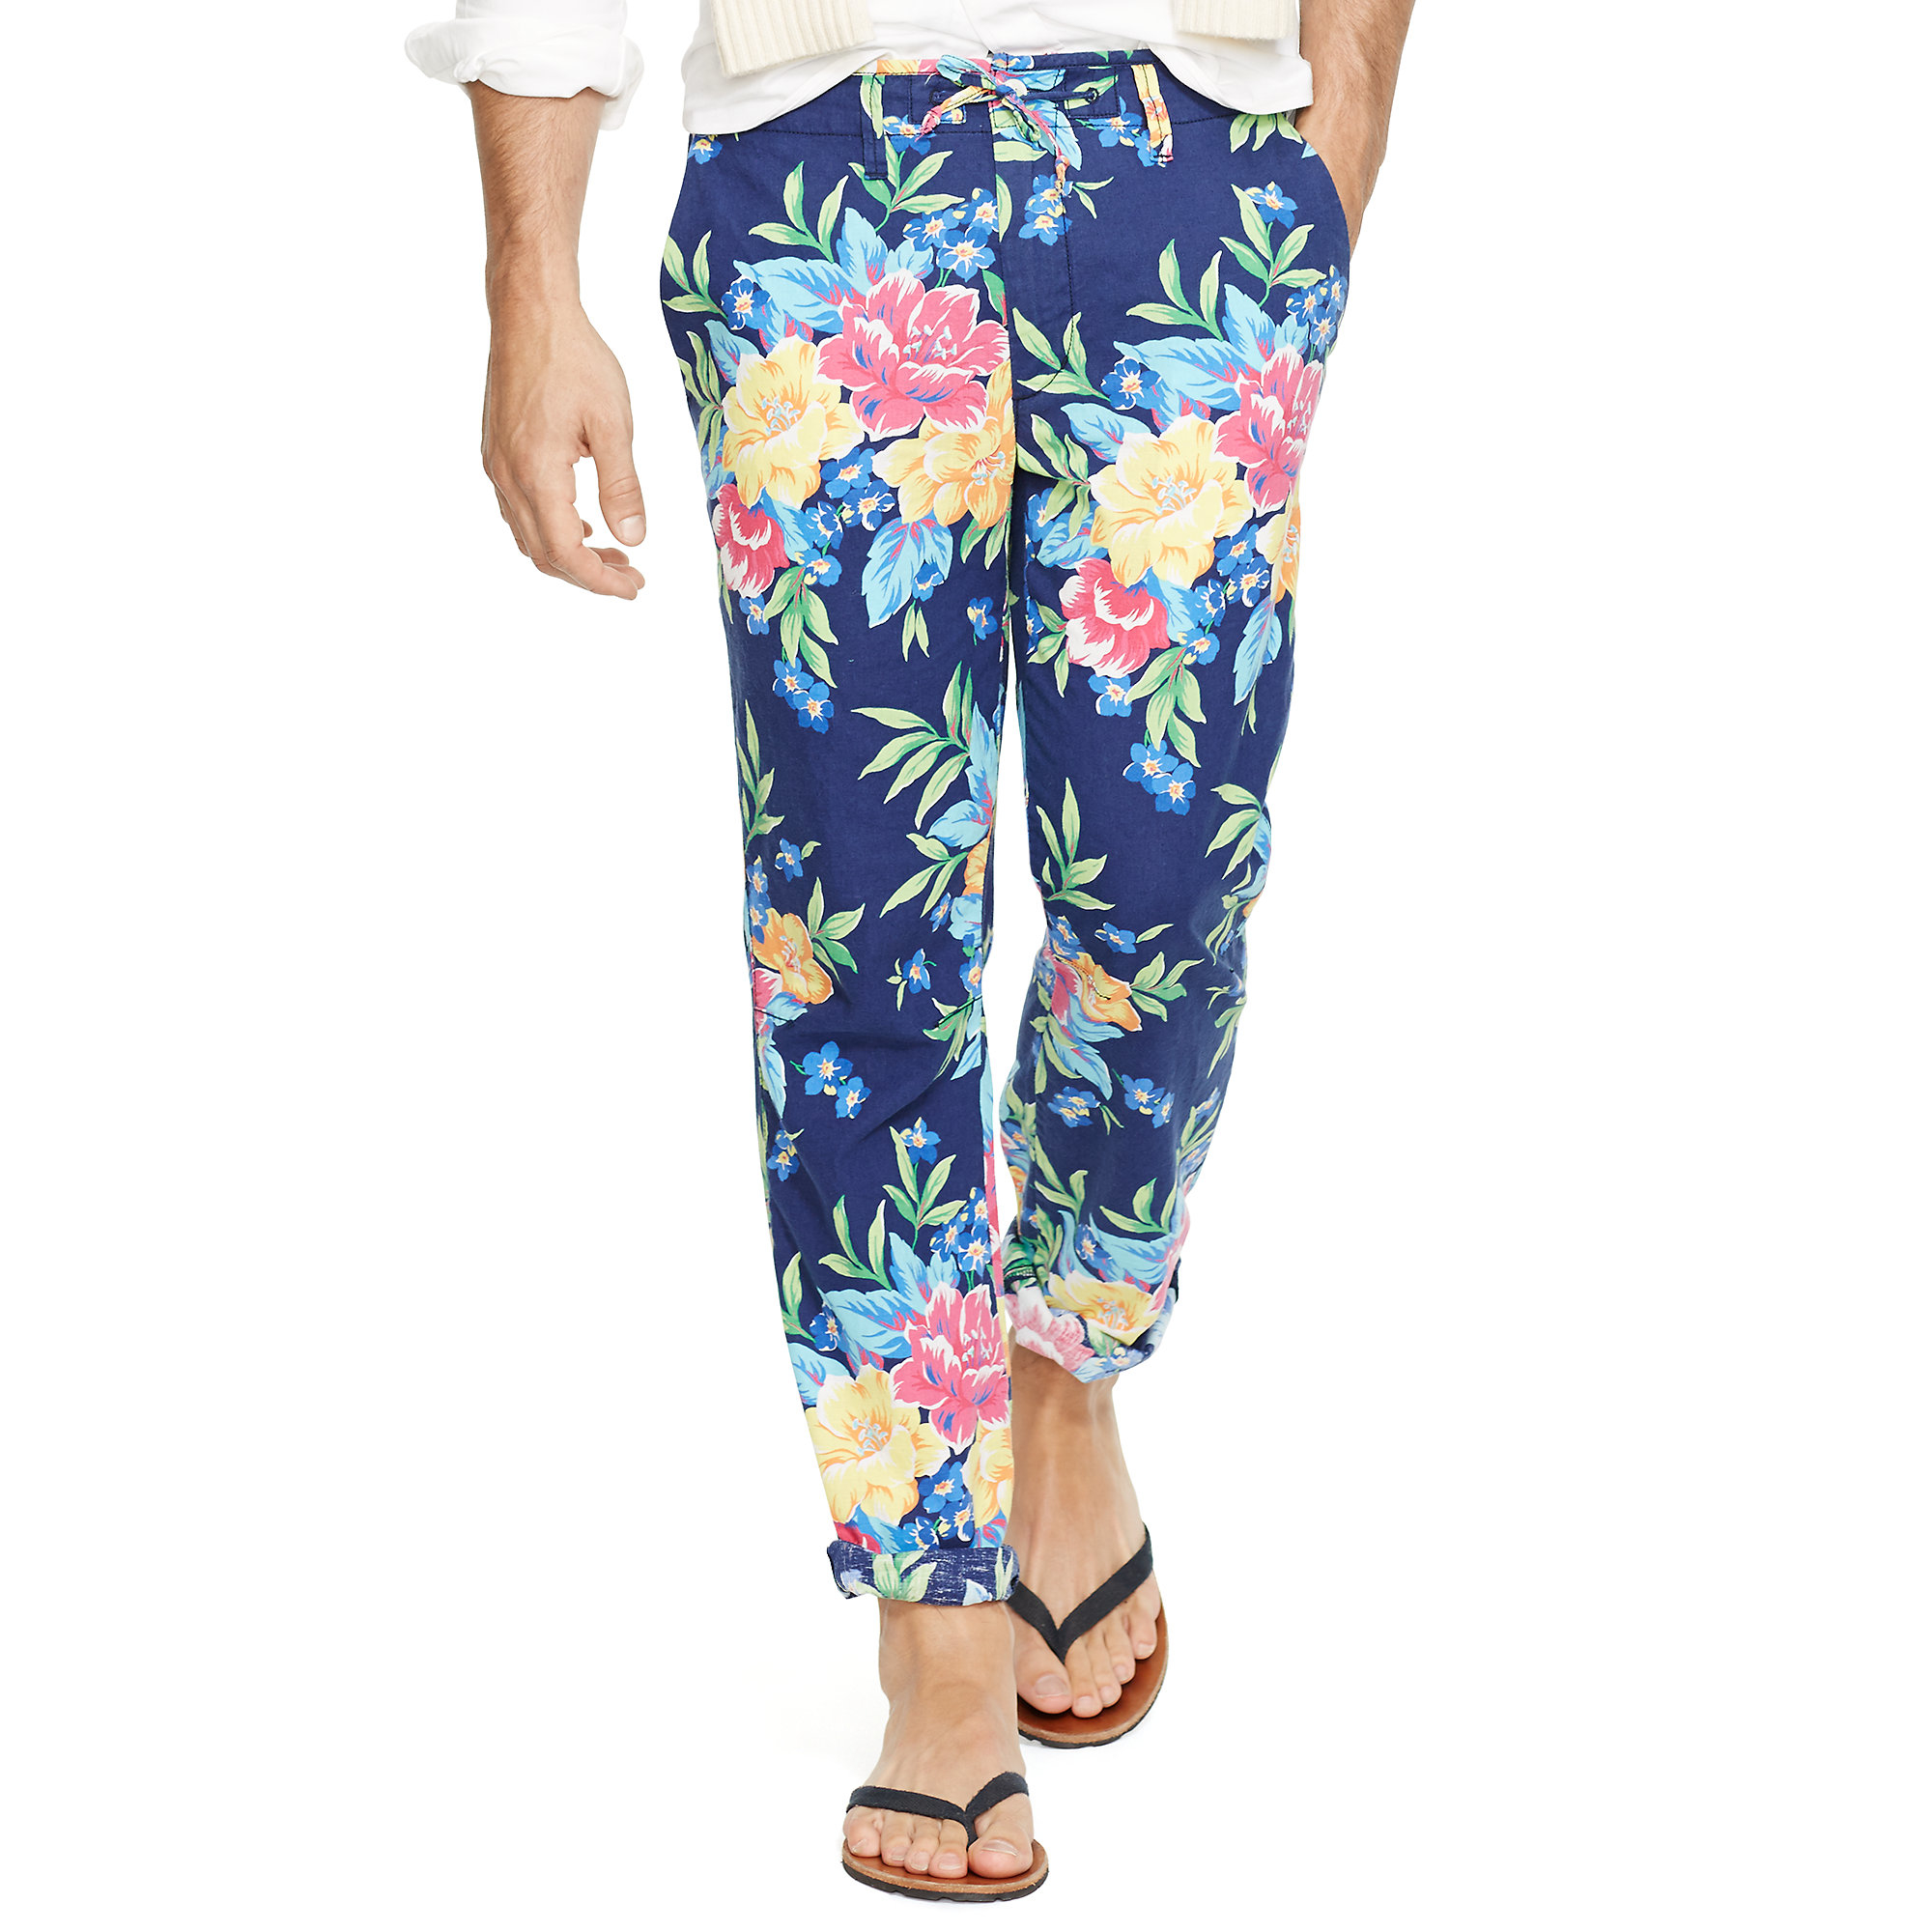 7687d1bca4ac Lyst - Polo Ralph Lauren Straight-fit Floral Pants in Blue for Men